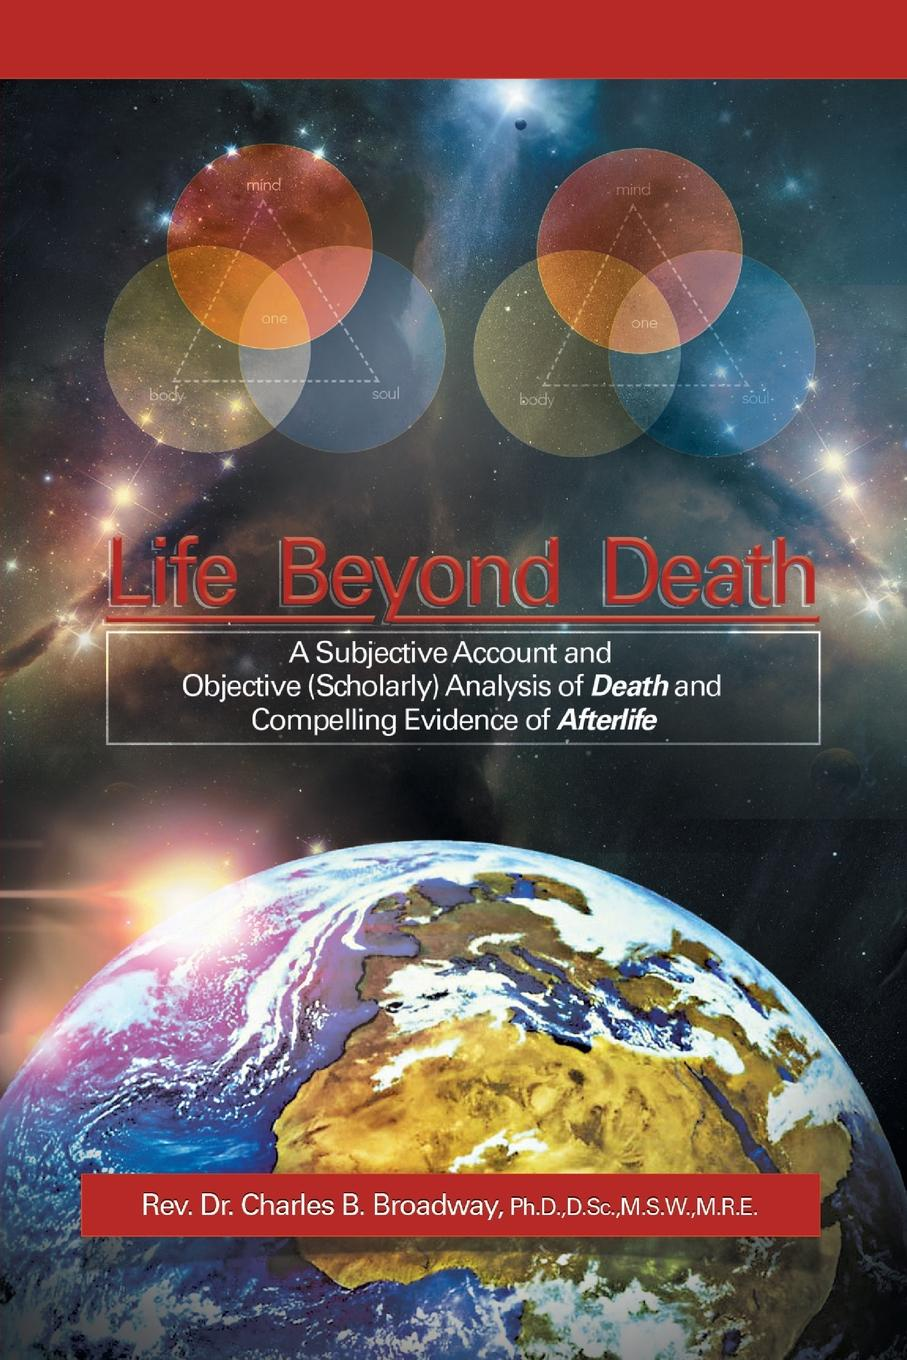 Reverend Dr Charles B. Broadway Life Beyond Death. A Subjective Account and Objective (Scholarly) Analysis of Death and Compelling Evidence of a After Life digifriends интерактивная игрушка динозавр terry